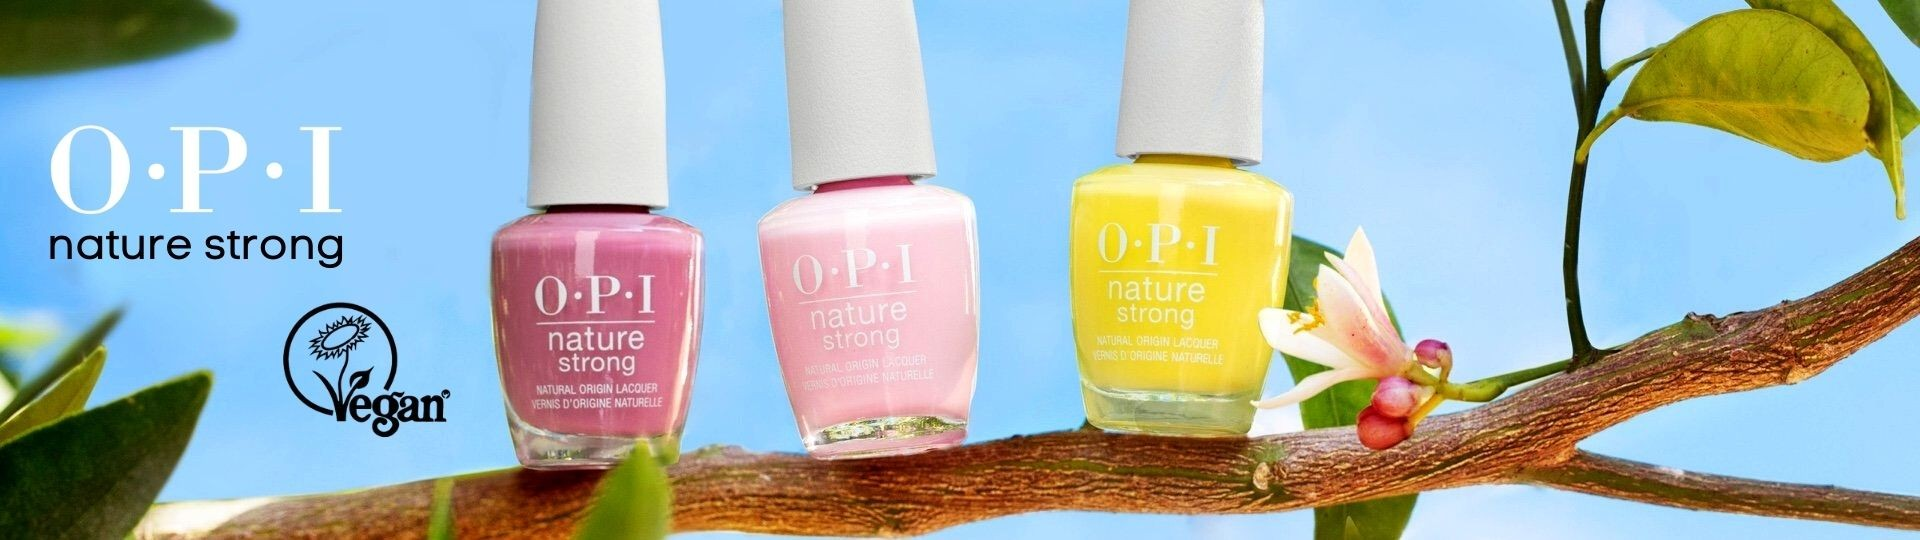 OPI Nature Strong